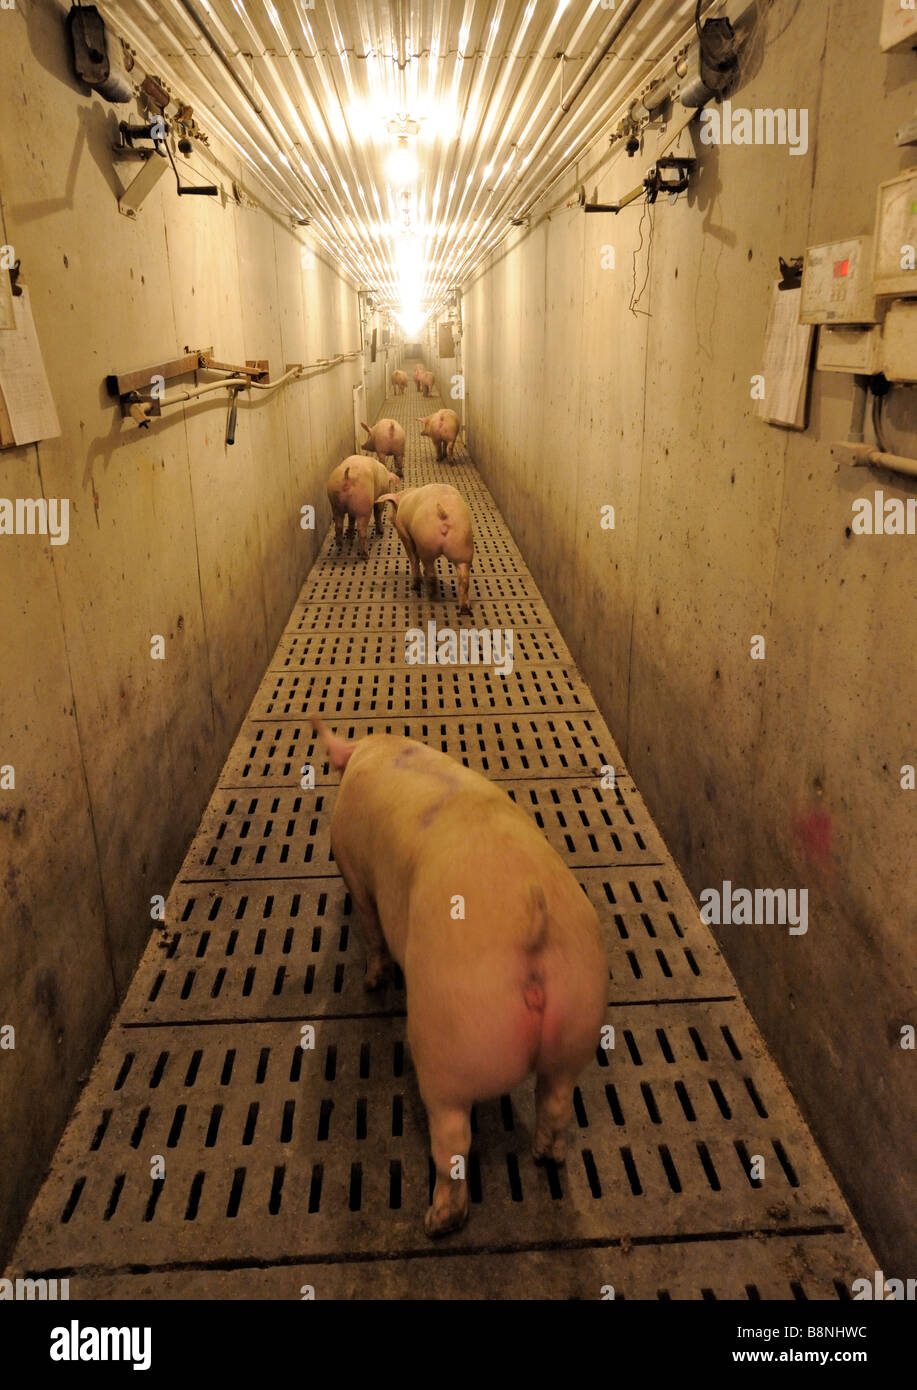 Getting hogs ready for shipping - Stock Image